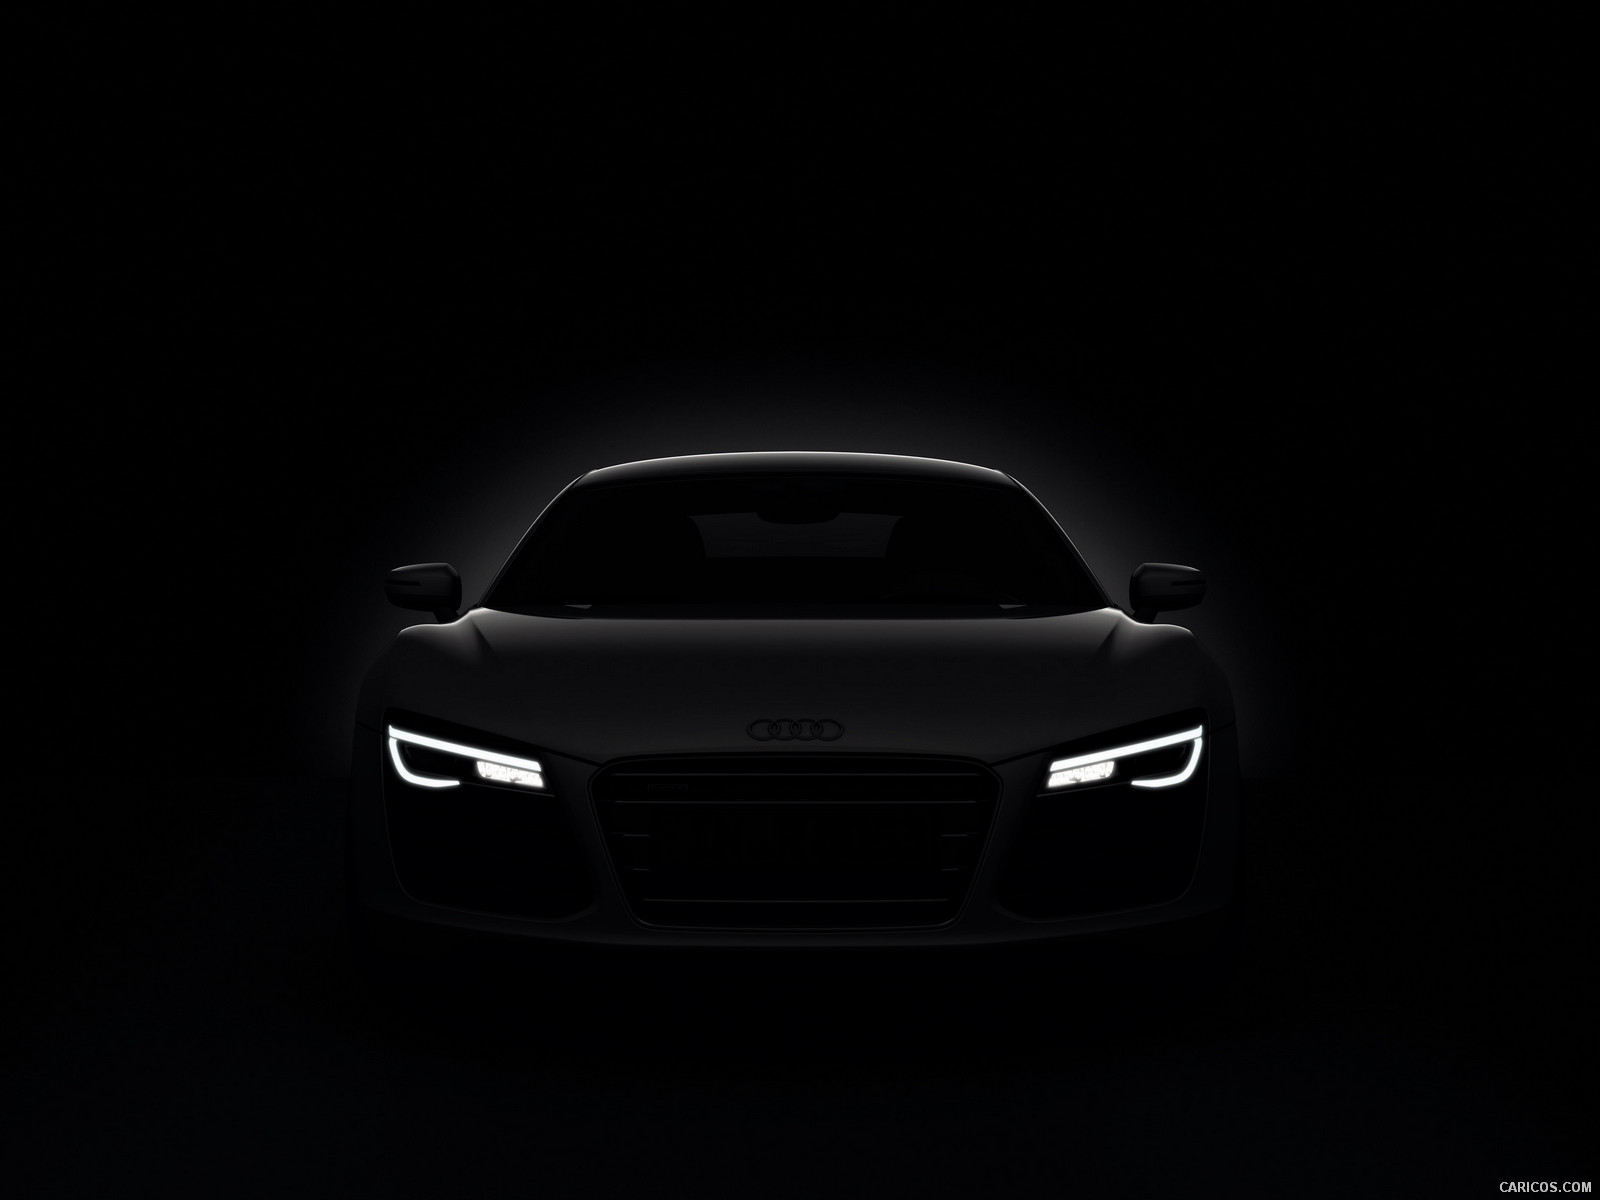 2013 Audi R8 LED Headlights - Wallpaper